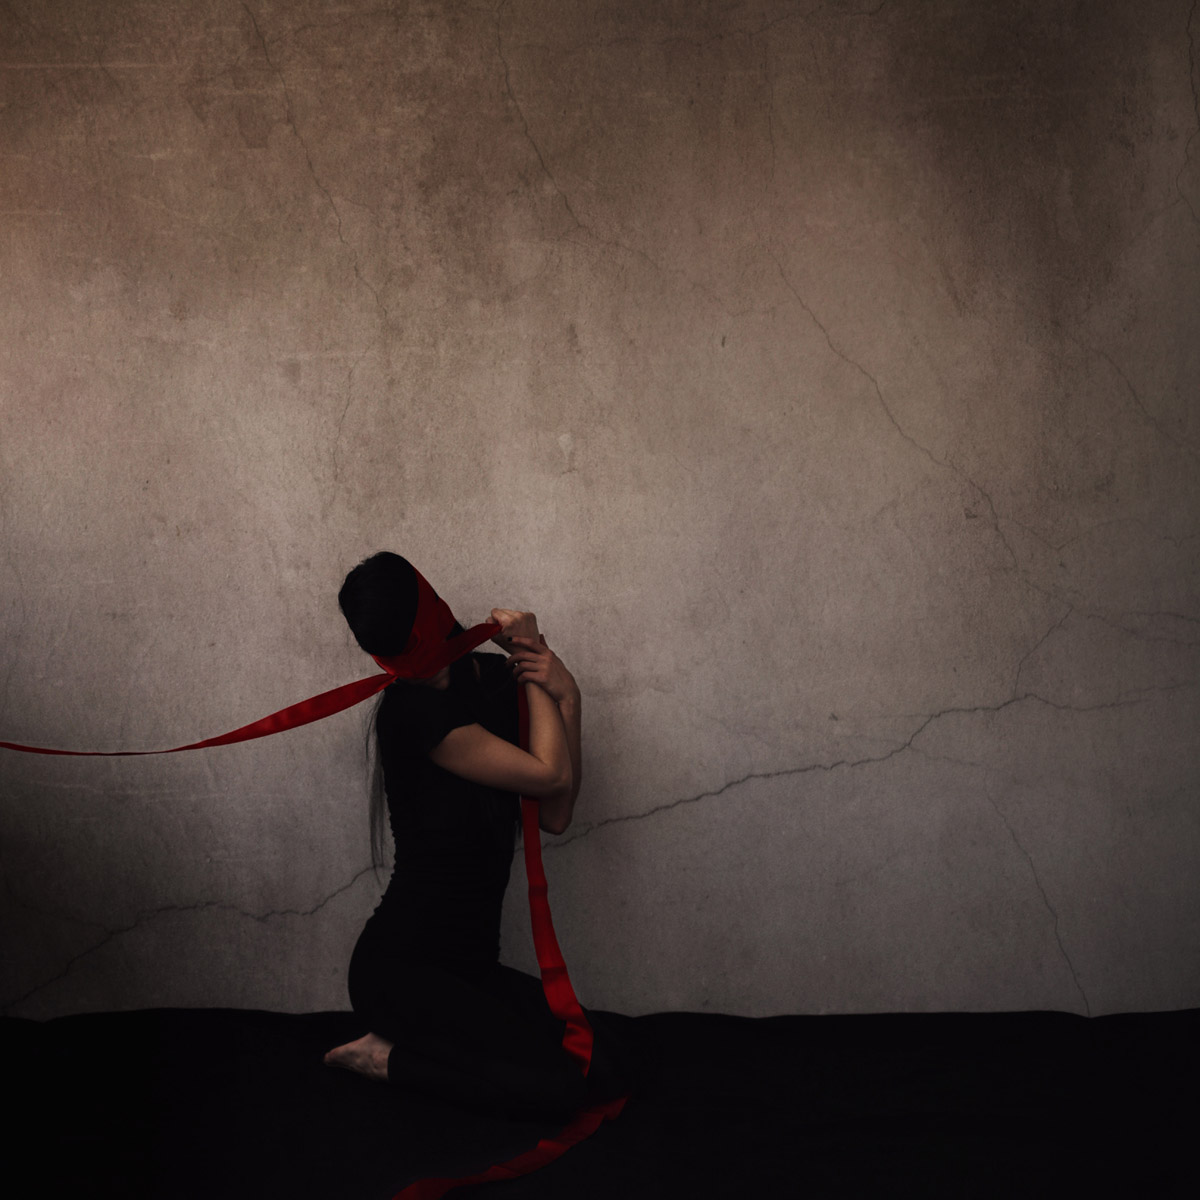 Blinded | Anja Matko | String of life